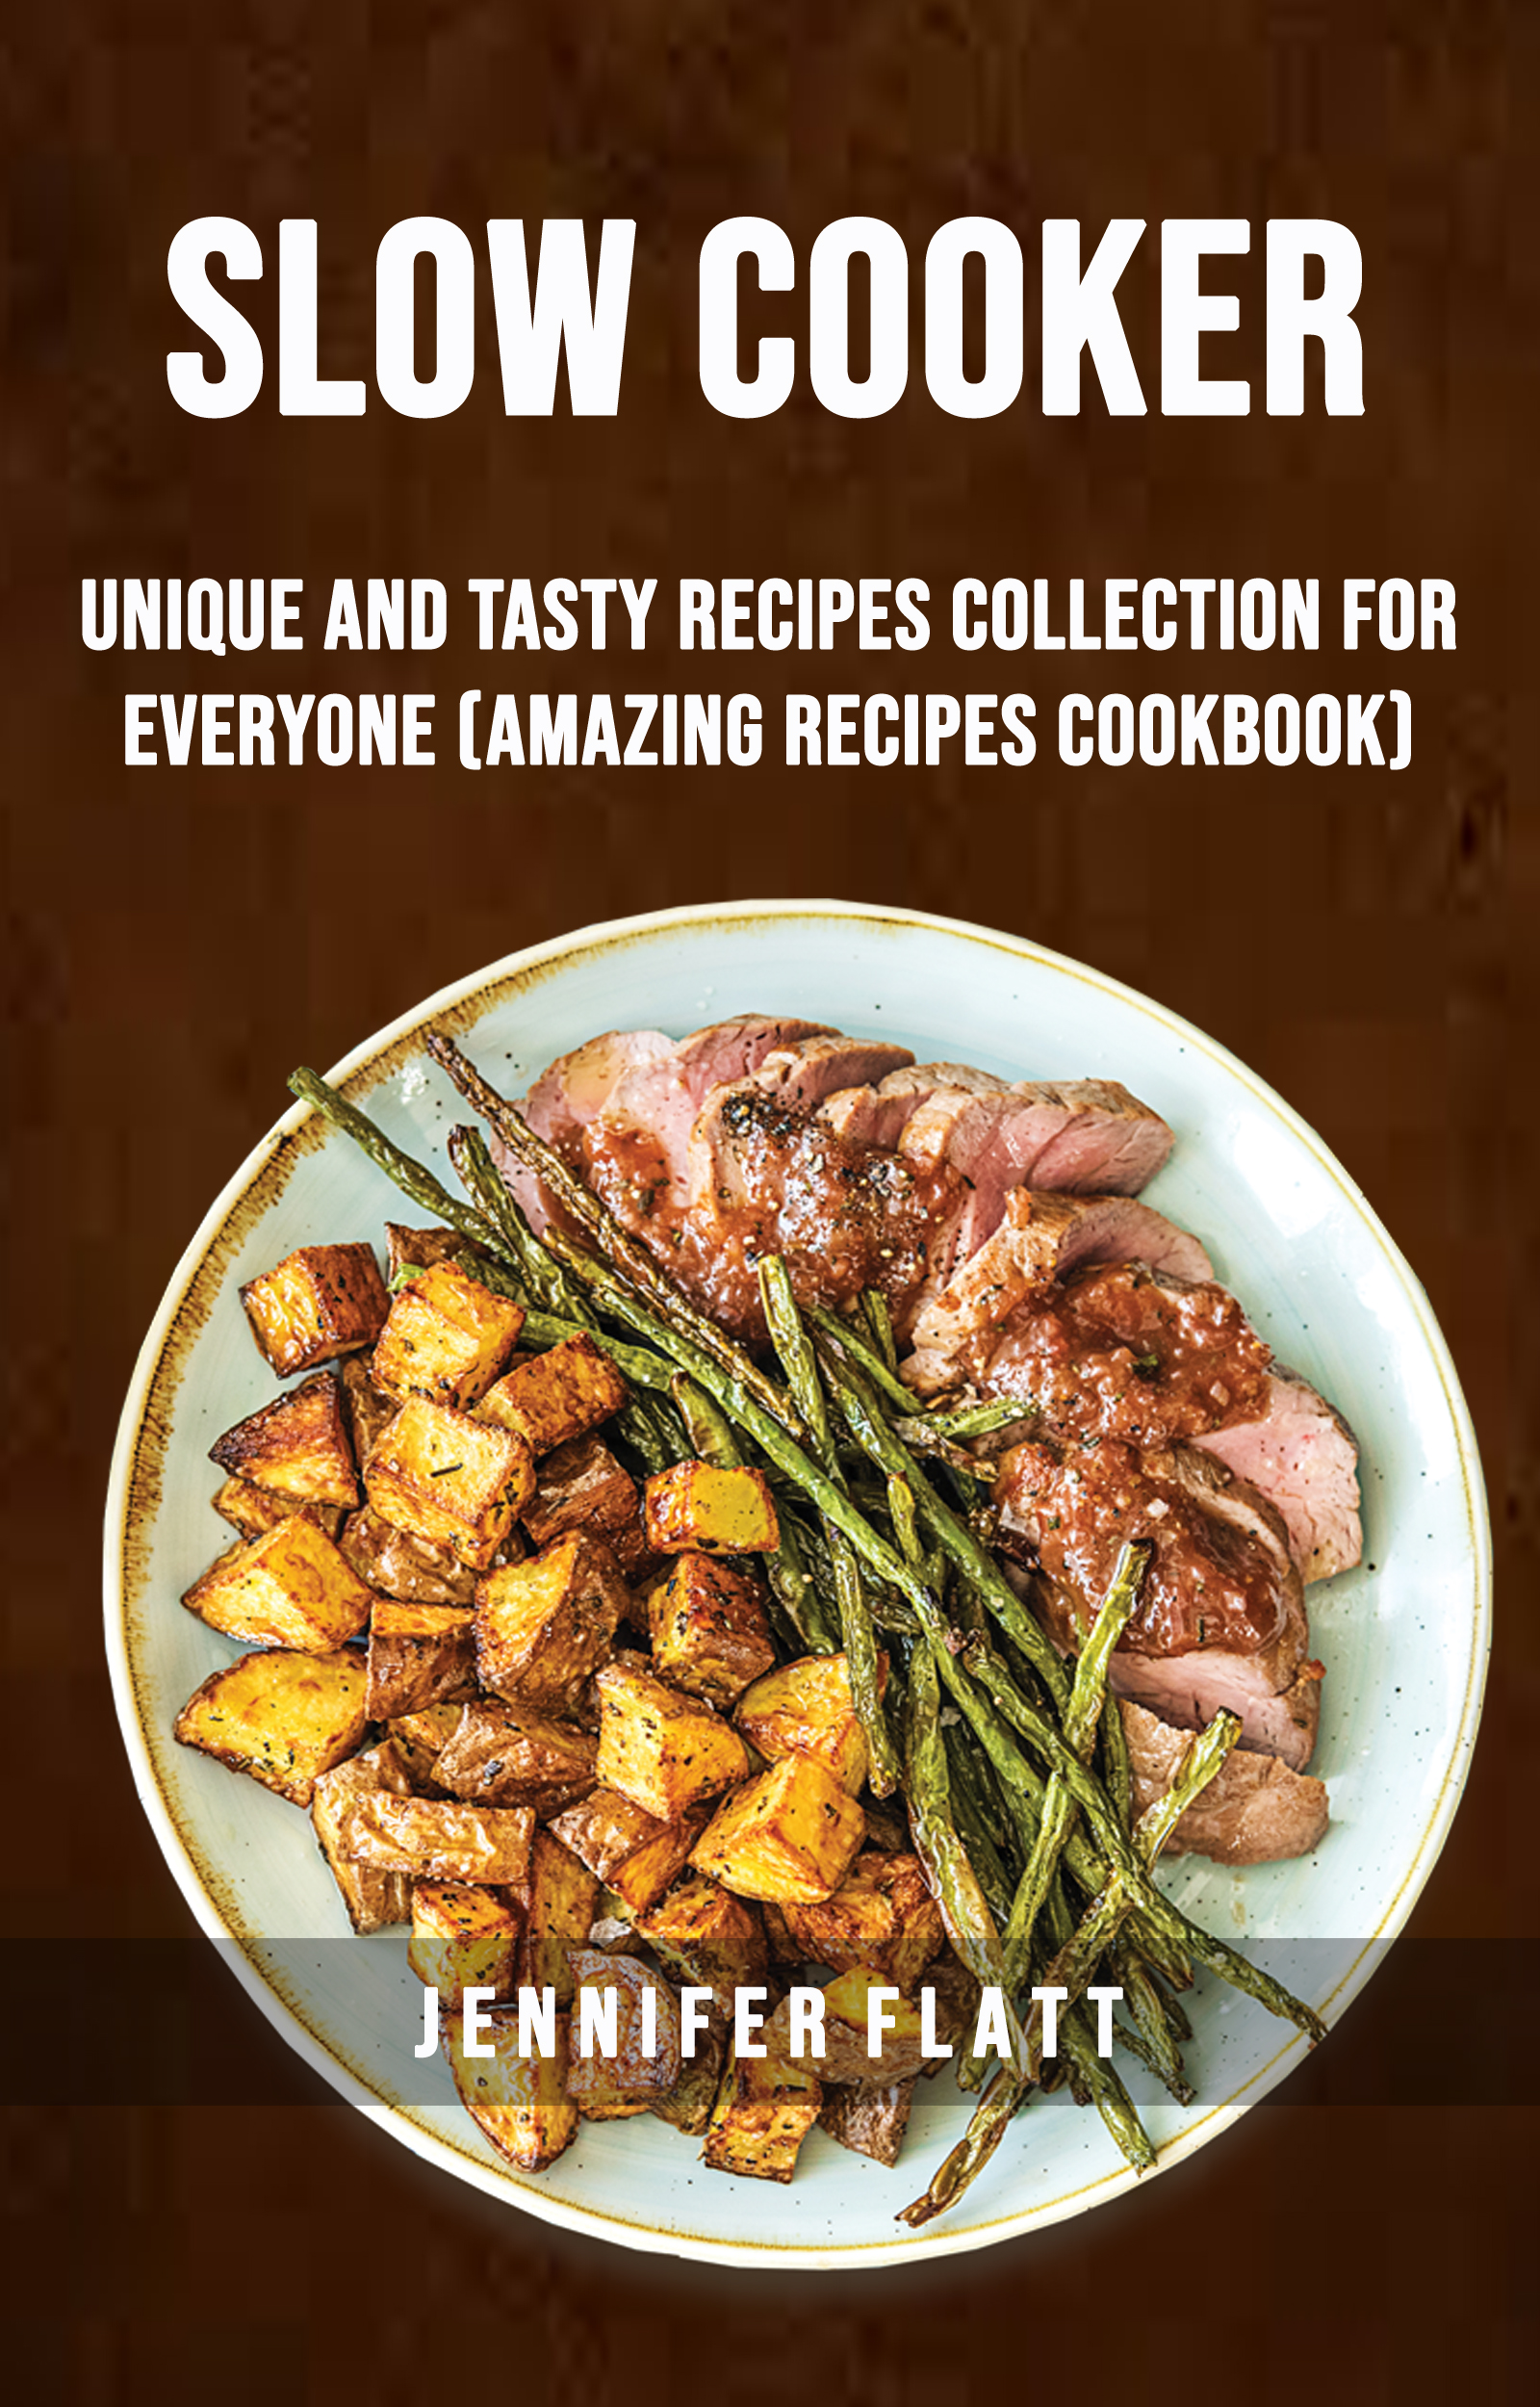 Slow cooker: unique and tasty recipes collection for everyone (amazing recipes cookbook)